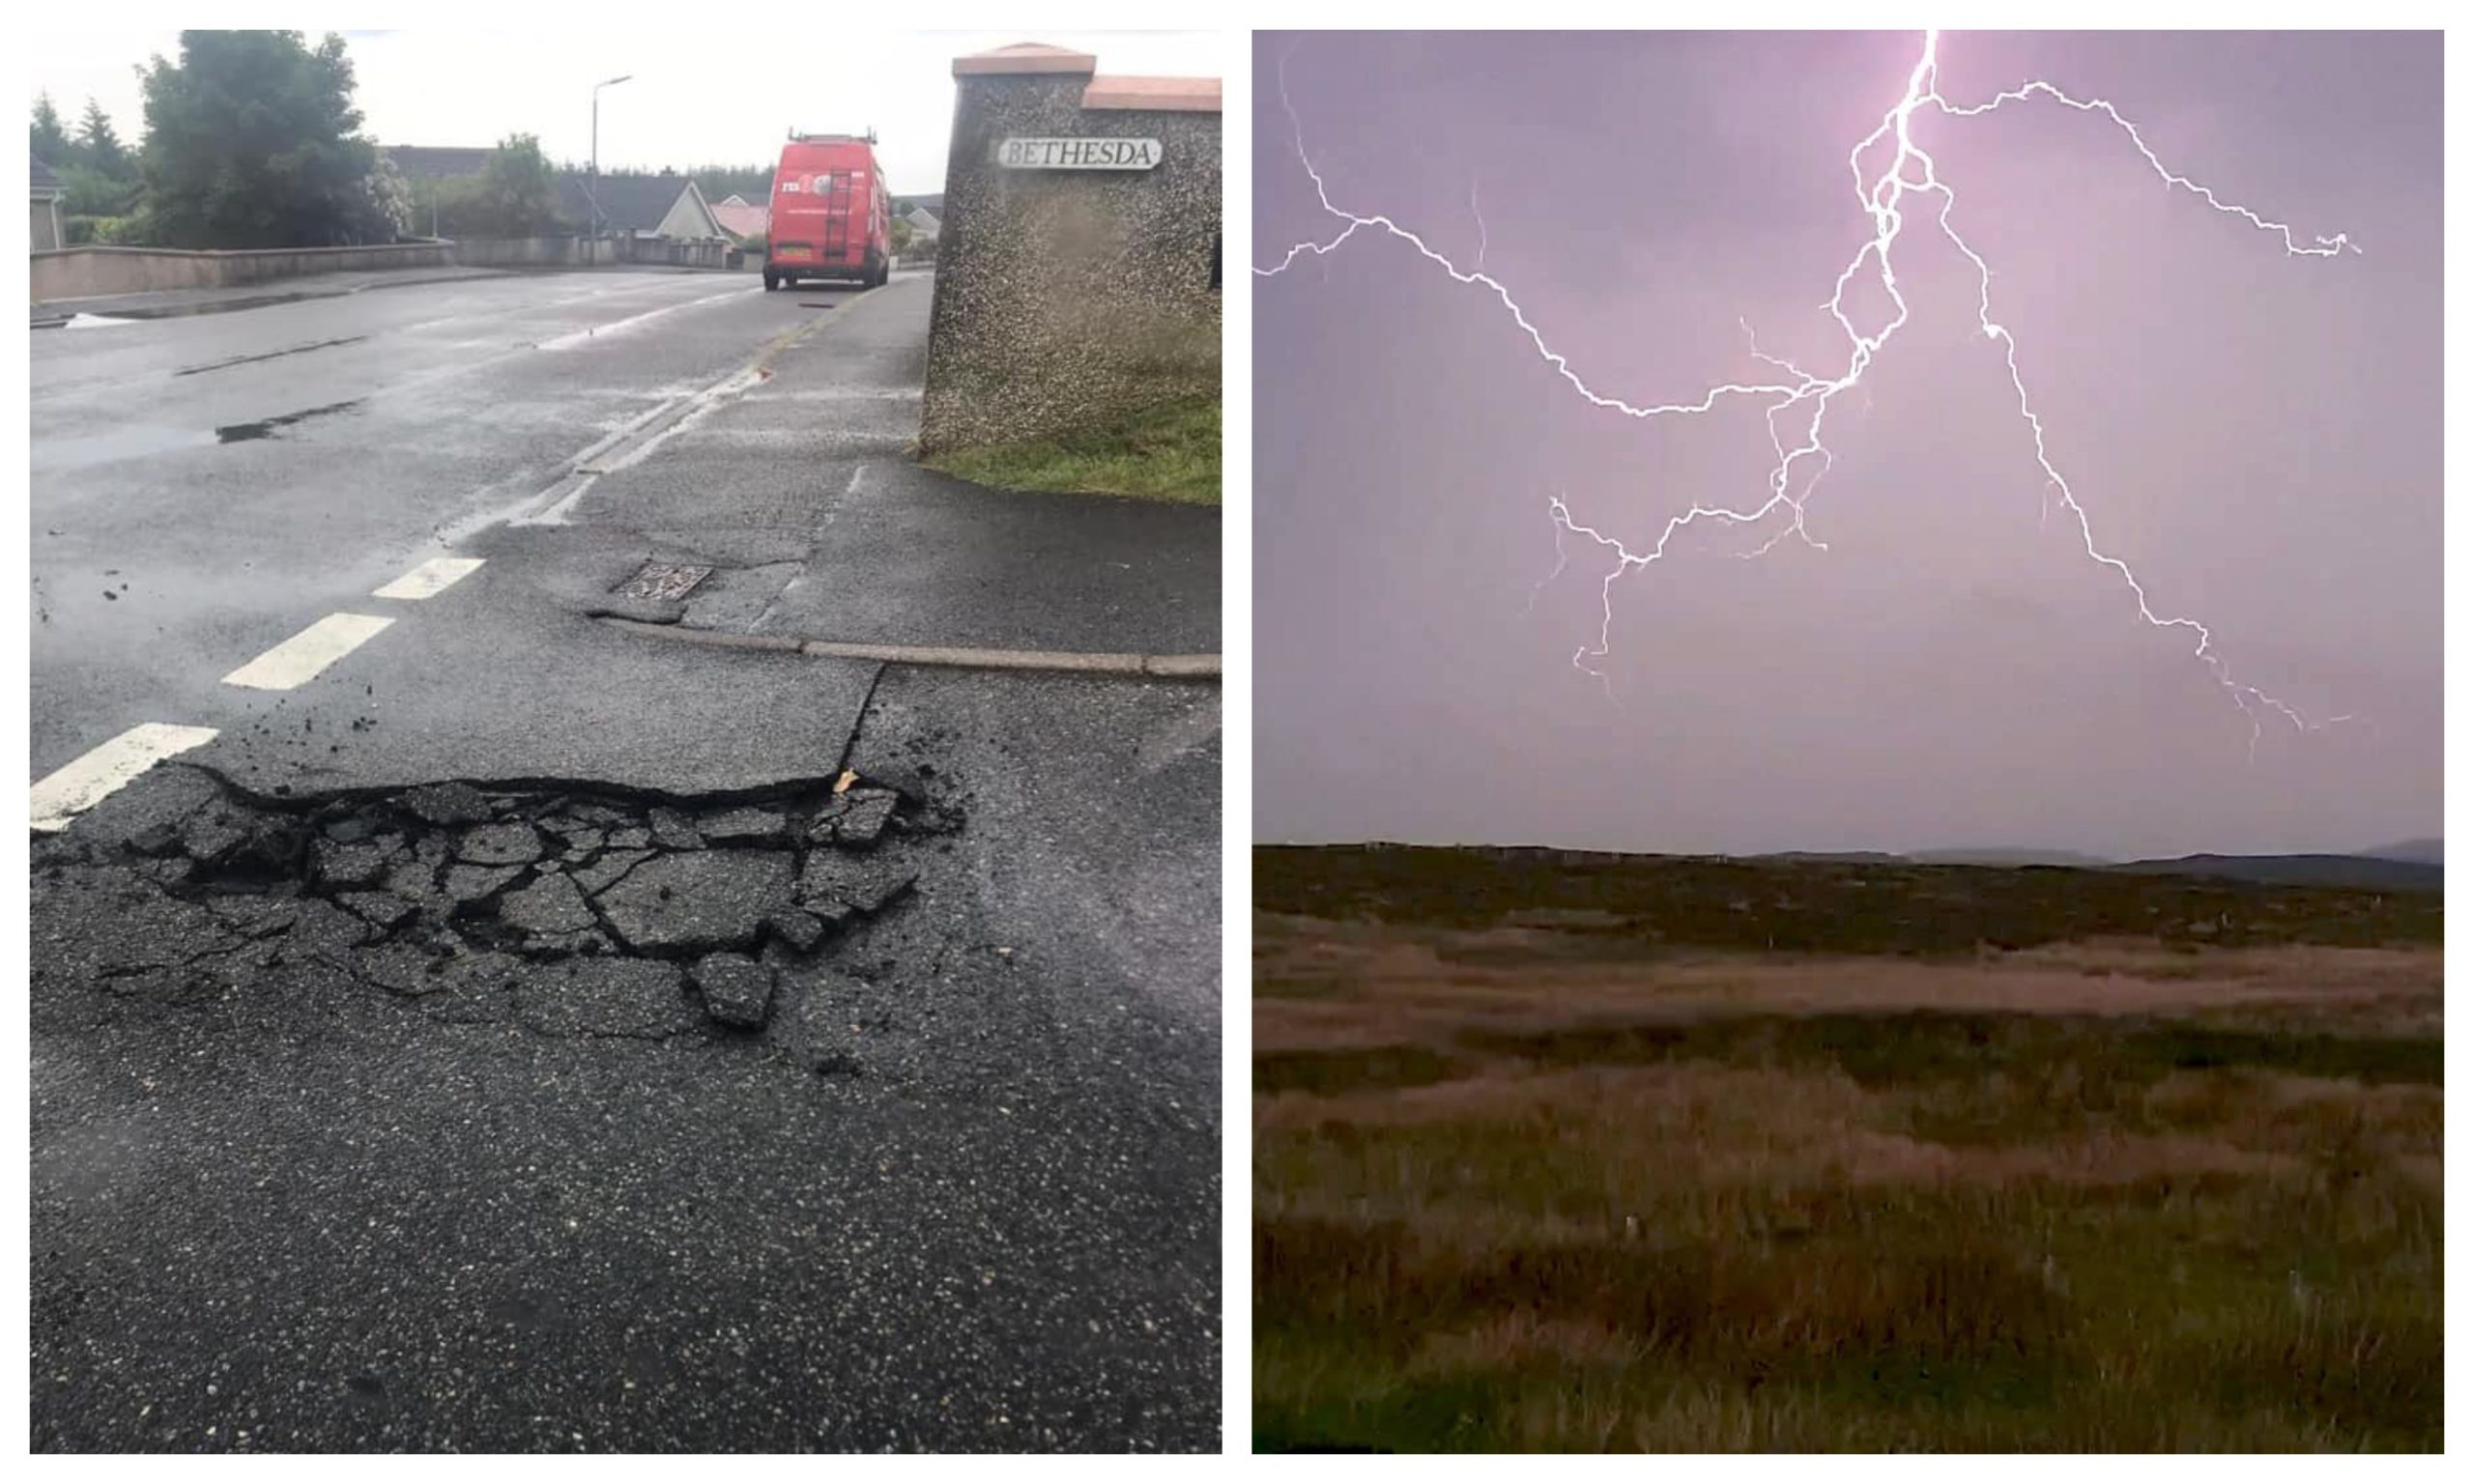 Left: Storm damage in Stornoway, picture by Michaela Fairbrother. Right: Lightning strikes in Newmarket, near Stornoway, picture by Dr Claire Gerrard